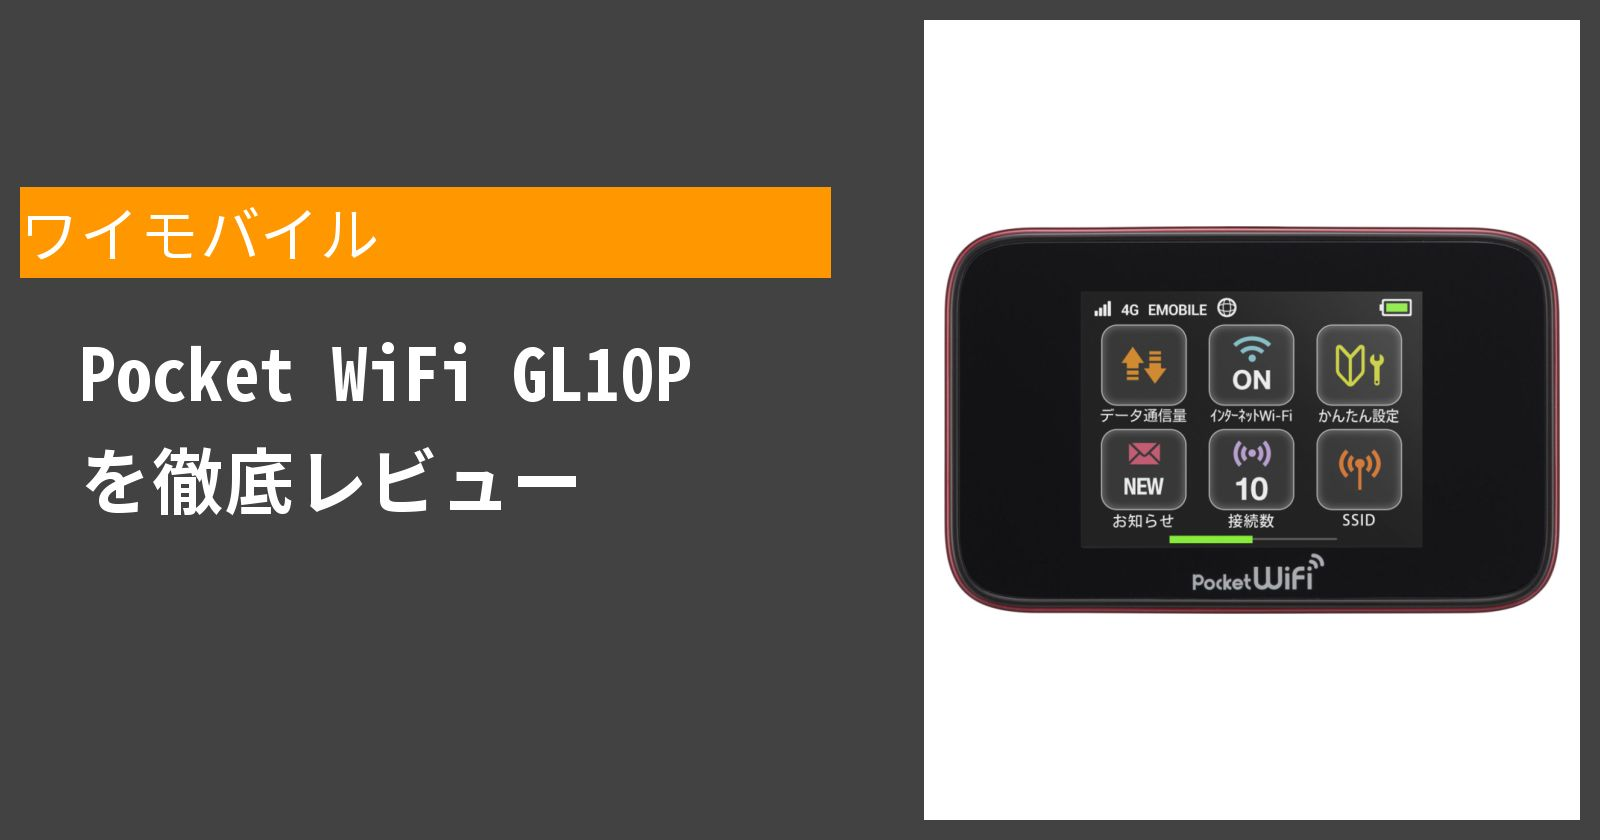 Pocket WiFi GL10Pを徹底評価